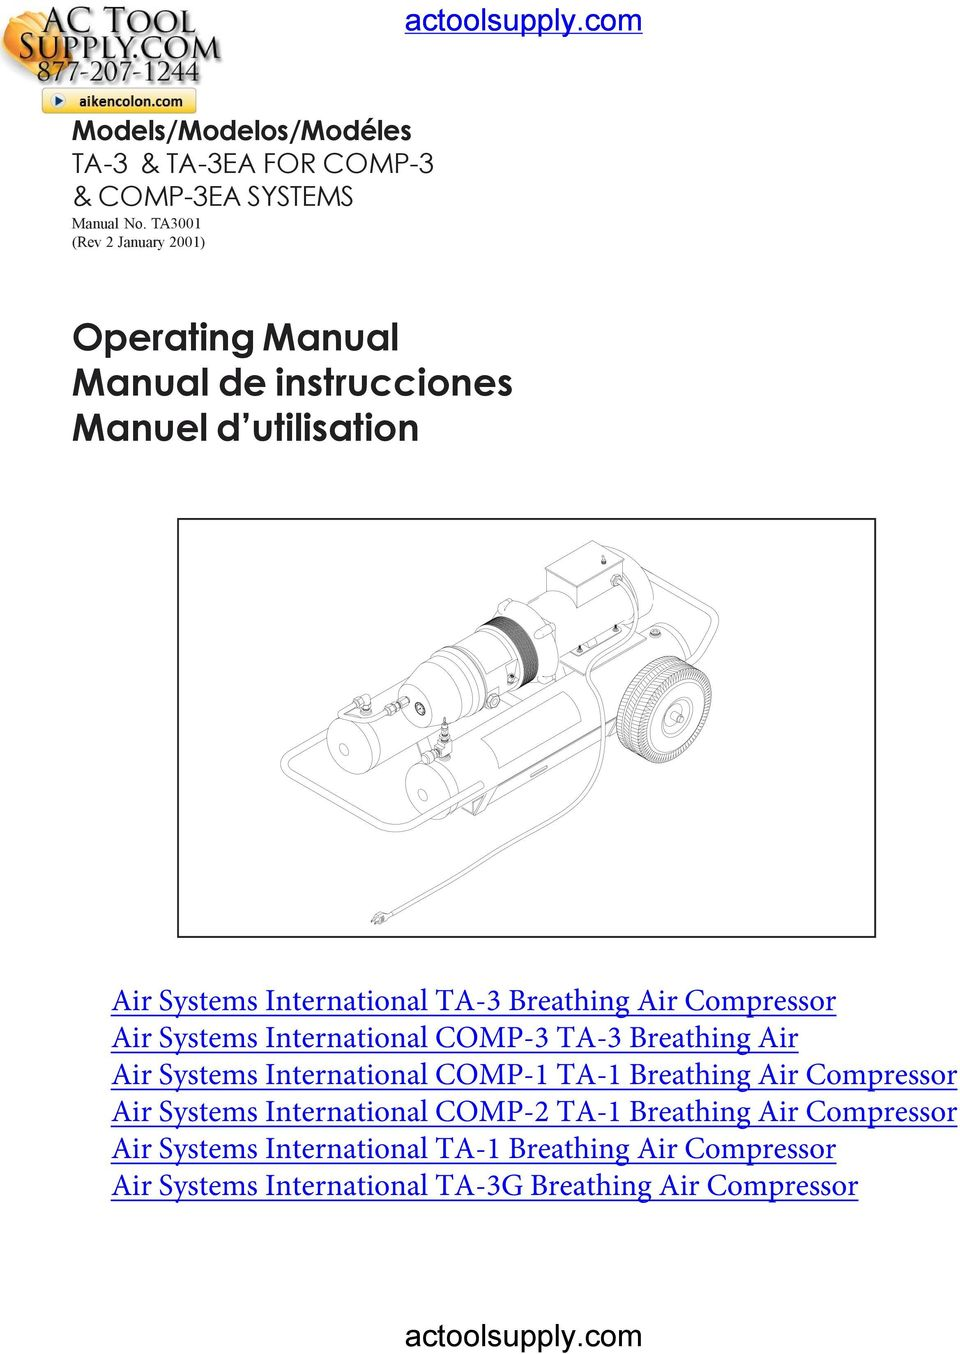 Breathing Air Compressor Air Systems International COMP-3 TA-3 Breathing Air Air Systems International COMP-1 TA-1 Breathing Air